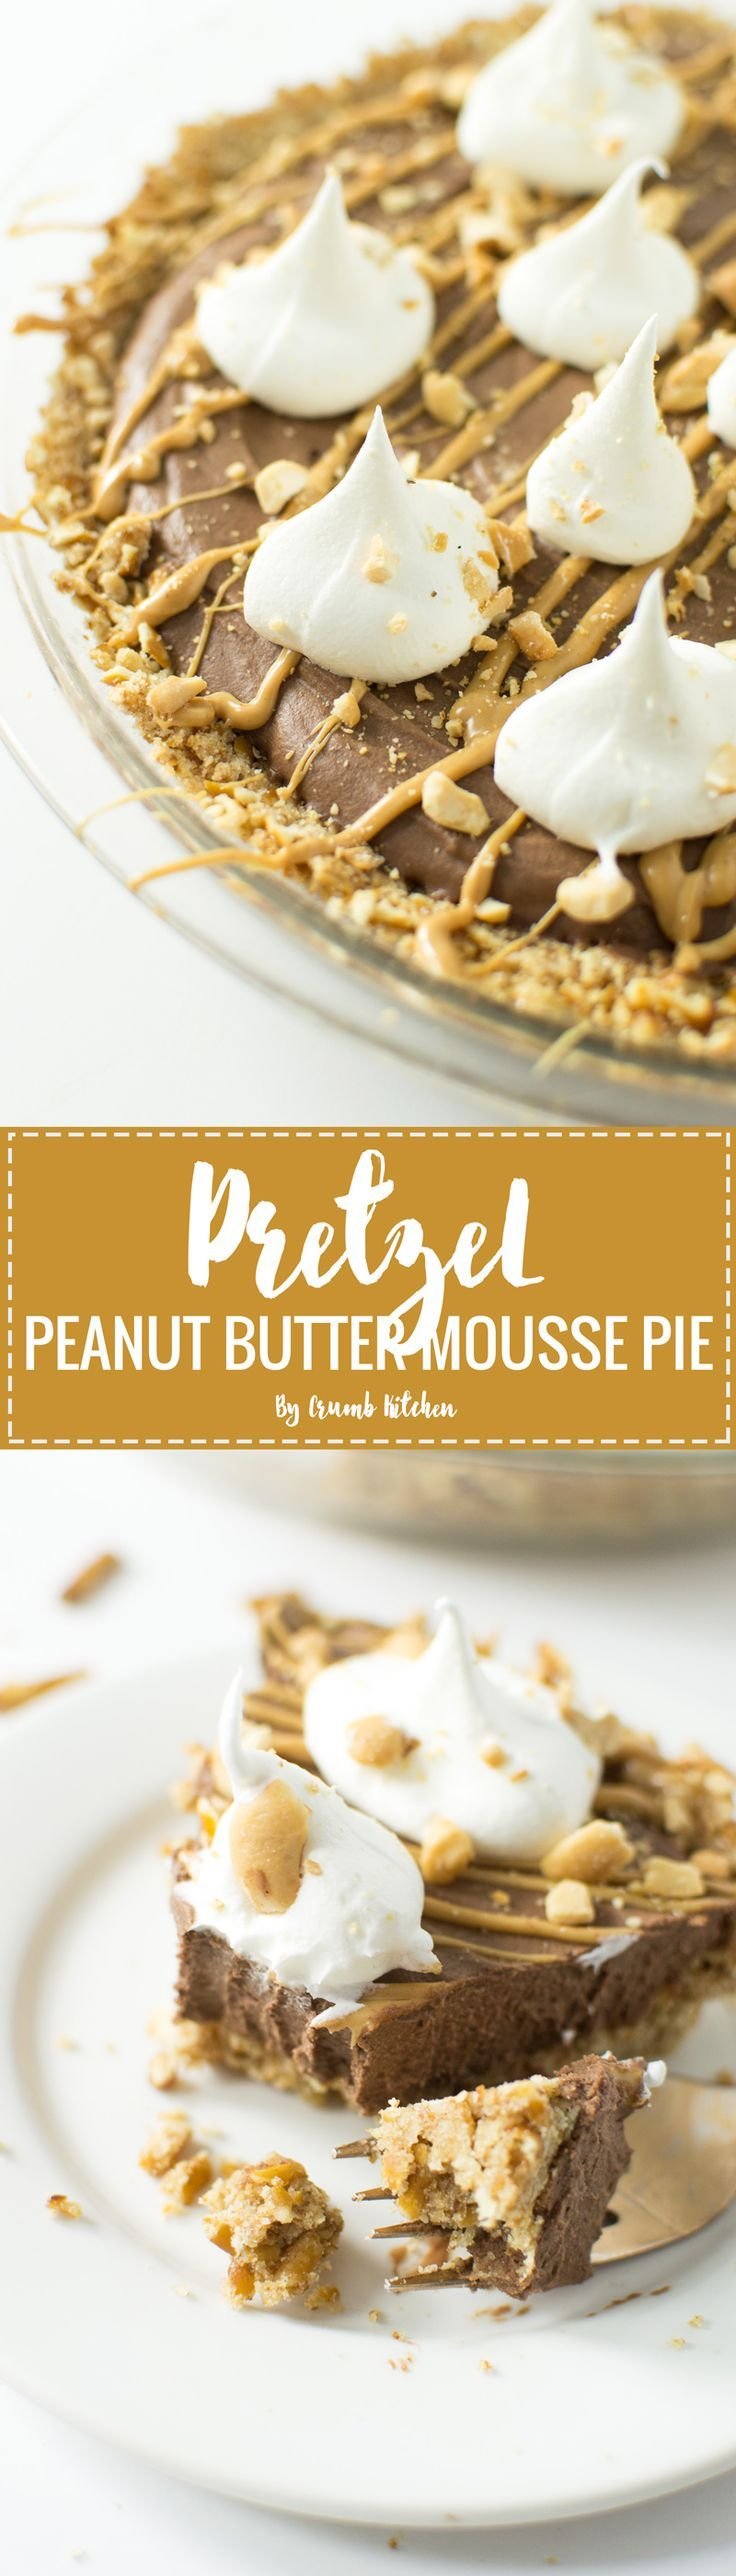 Pretzel crust topped with a vegan chocolate peanut butter mousse and dollops of whipped cream fill this Pretzel Peanut Butter Mousse Pie.   Crumb Kitchen